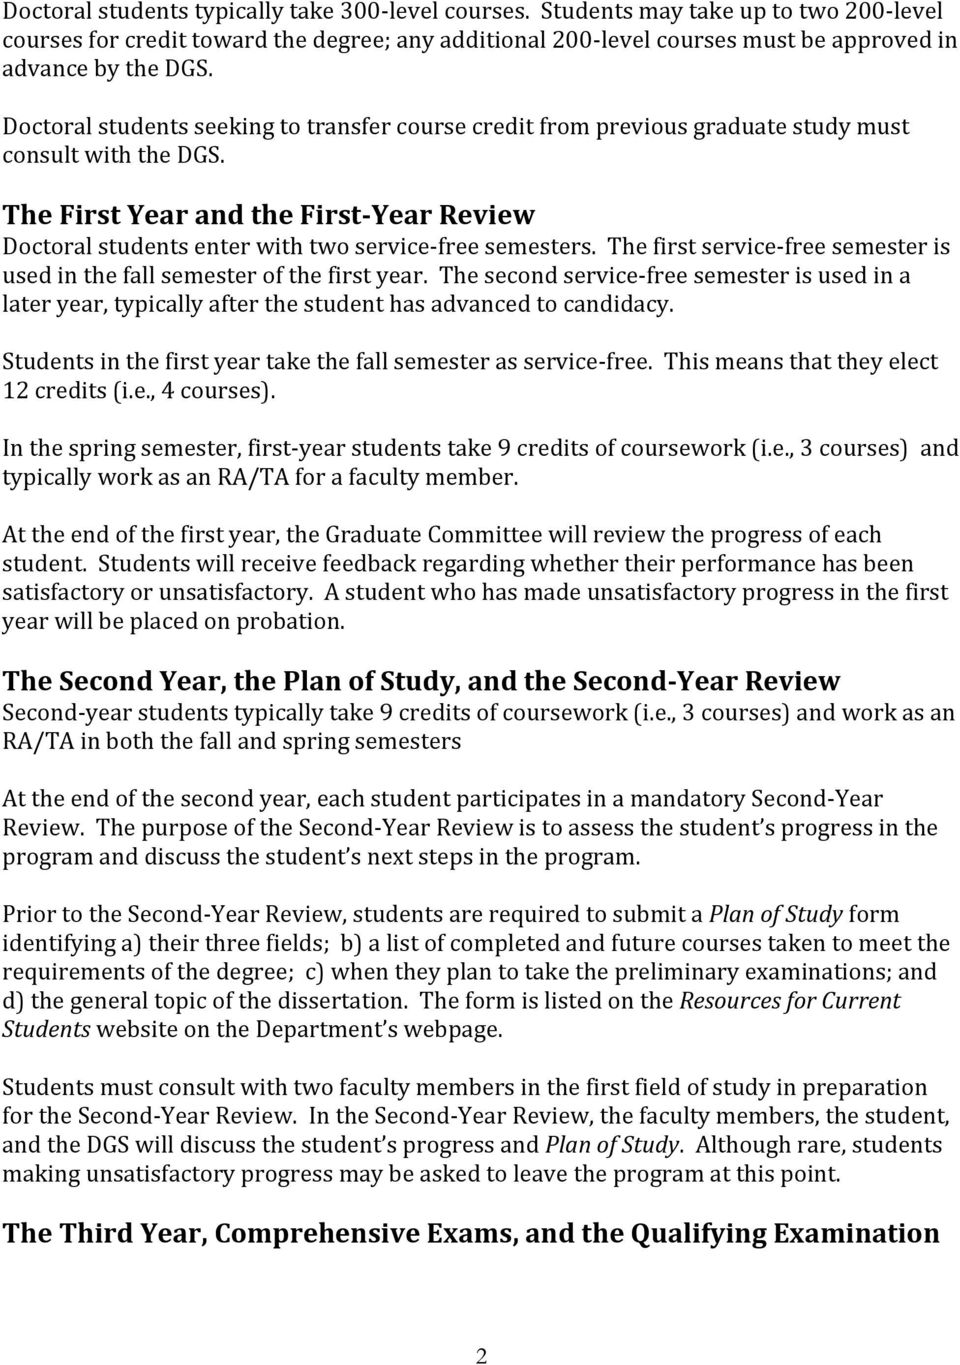 The First Year and the First Year Review Doctoral students enter with two service free semesters. The first service free semester is used in the fall semester of the first year.